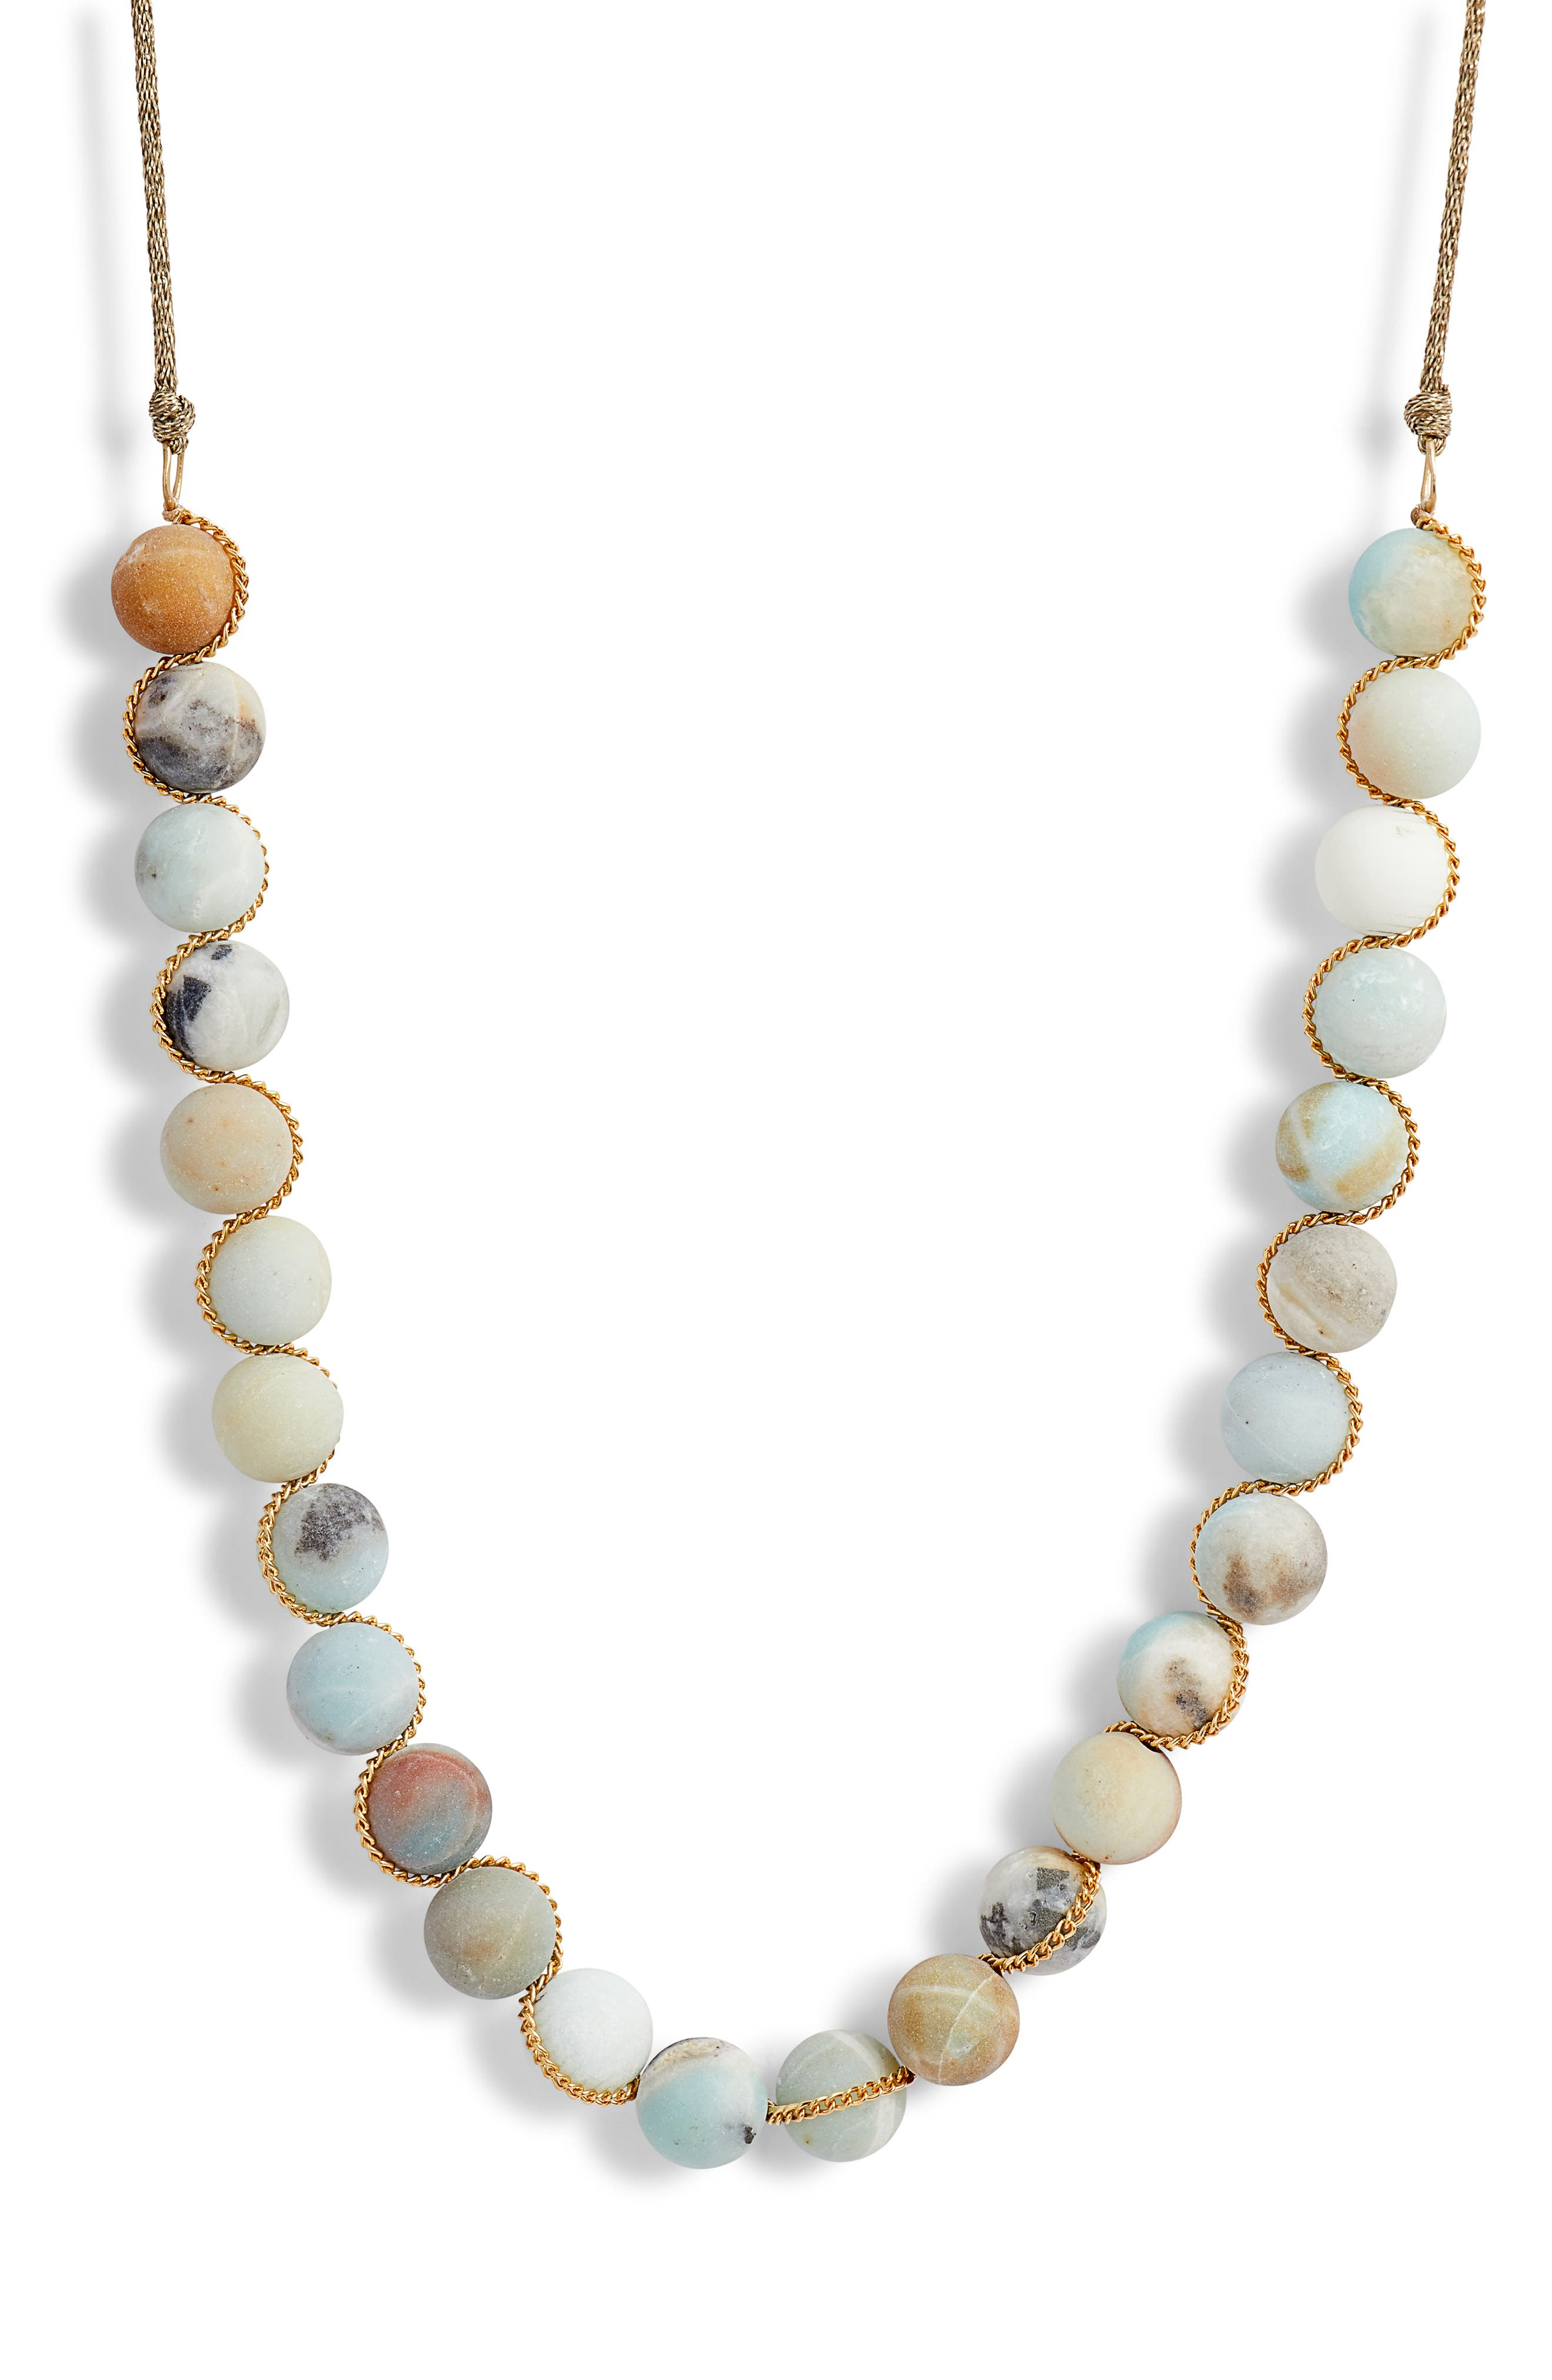 Matte Multicolor Amazonite Adjustable Necklace,                             Main thumbnail 1, color,                             MATTE MULTI